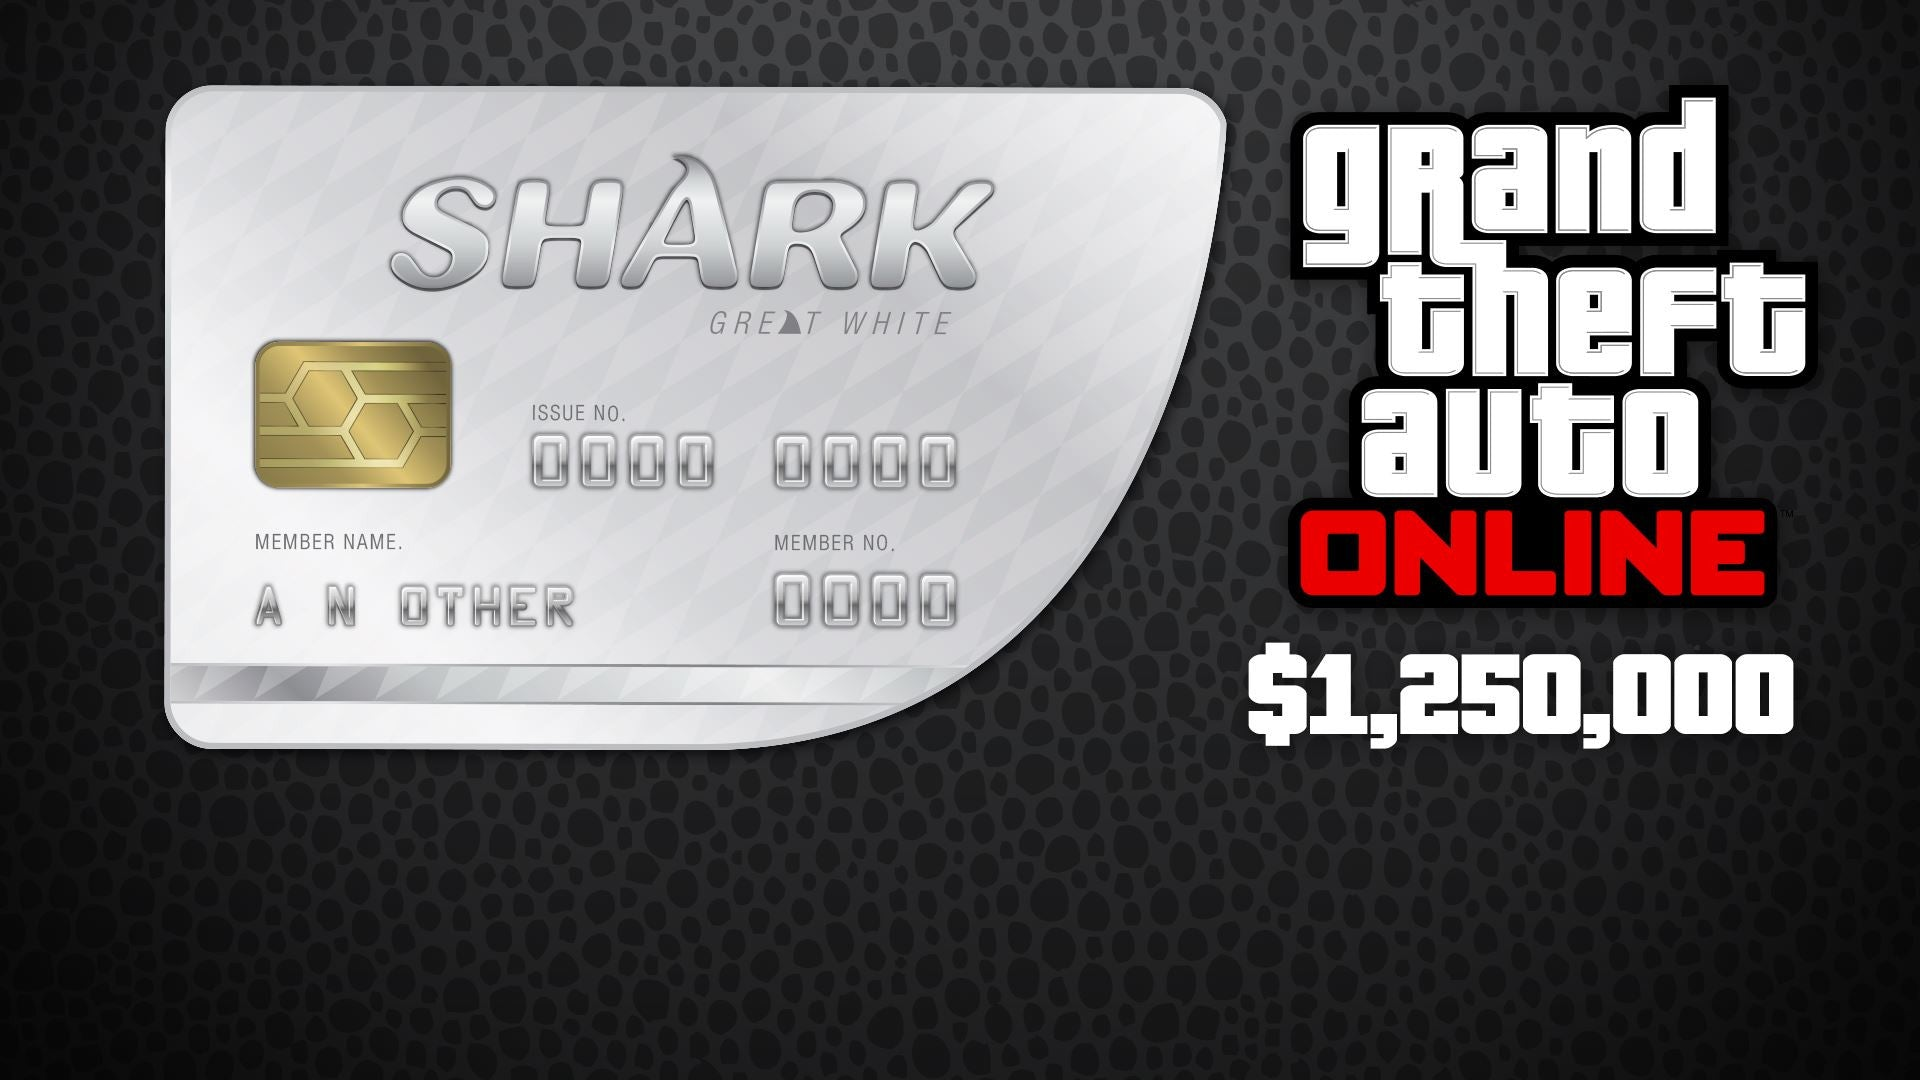 Grand Theft Auto Online - $1,250,000 Great White Shark Cash Card XBOX One CD Key - Swipe Gaming